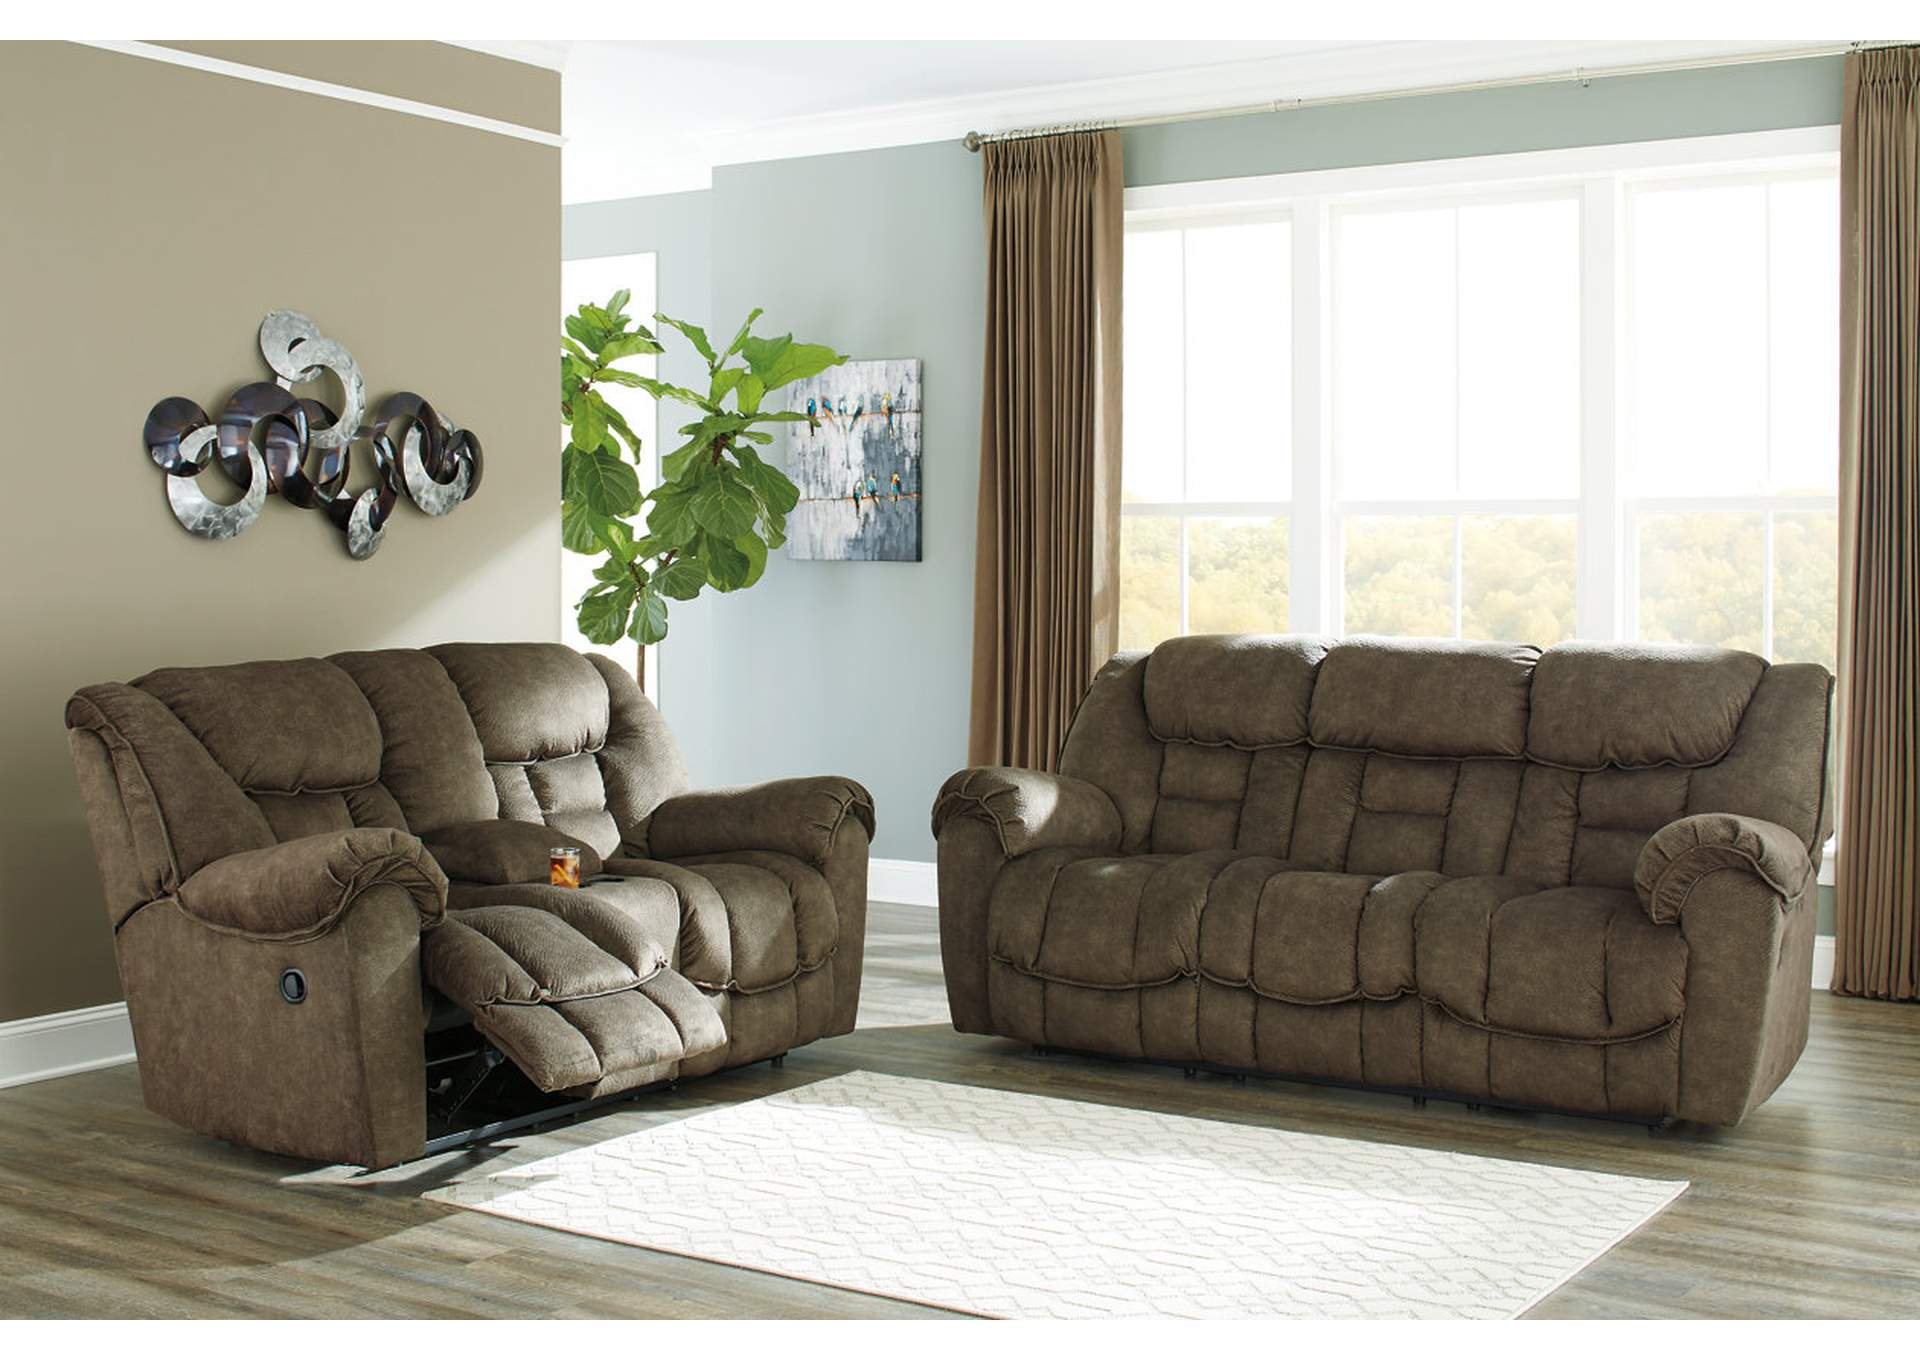 Capehorn Earth Reclining Sofa & Loveseat,Signature Design By Ashley